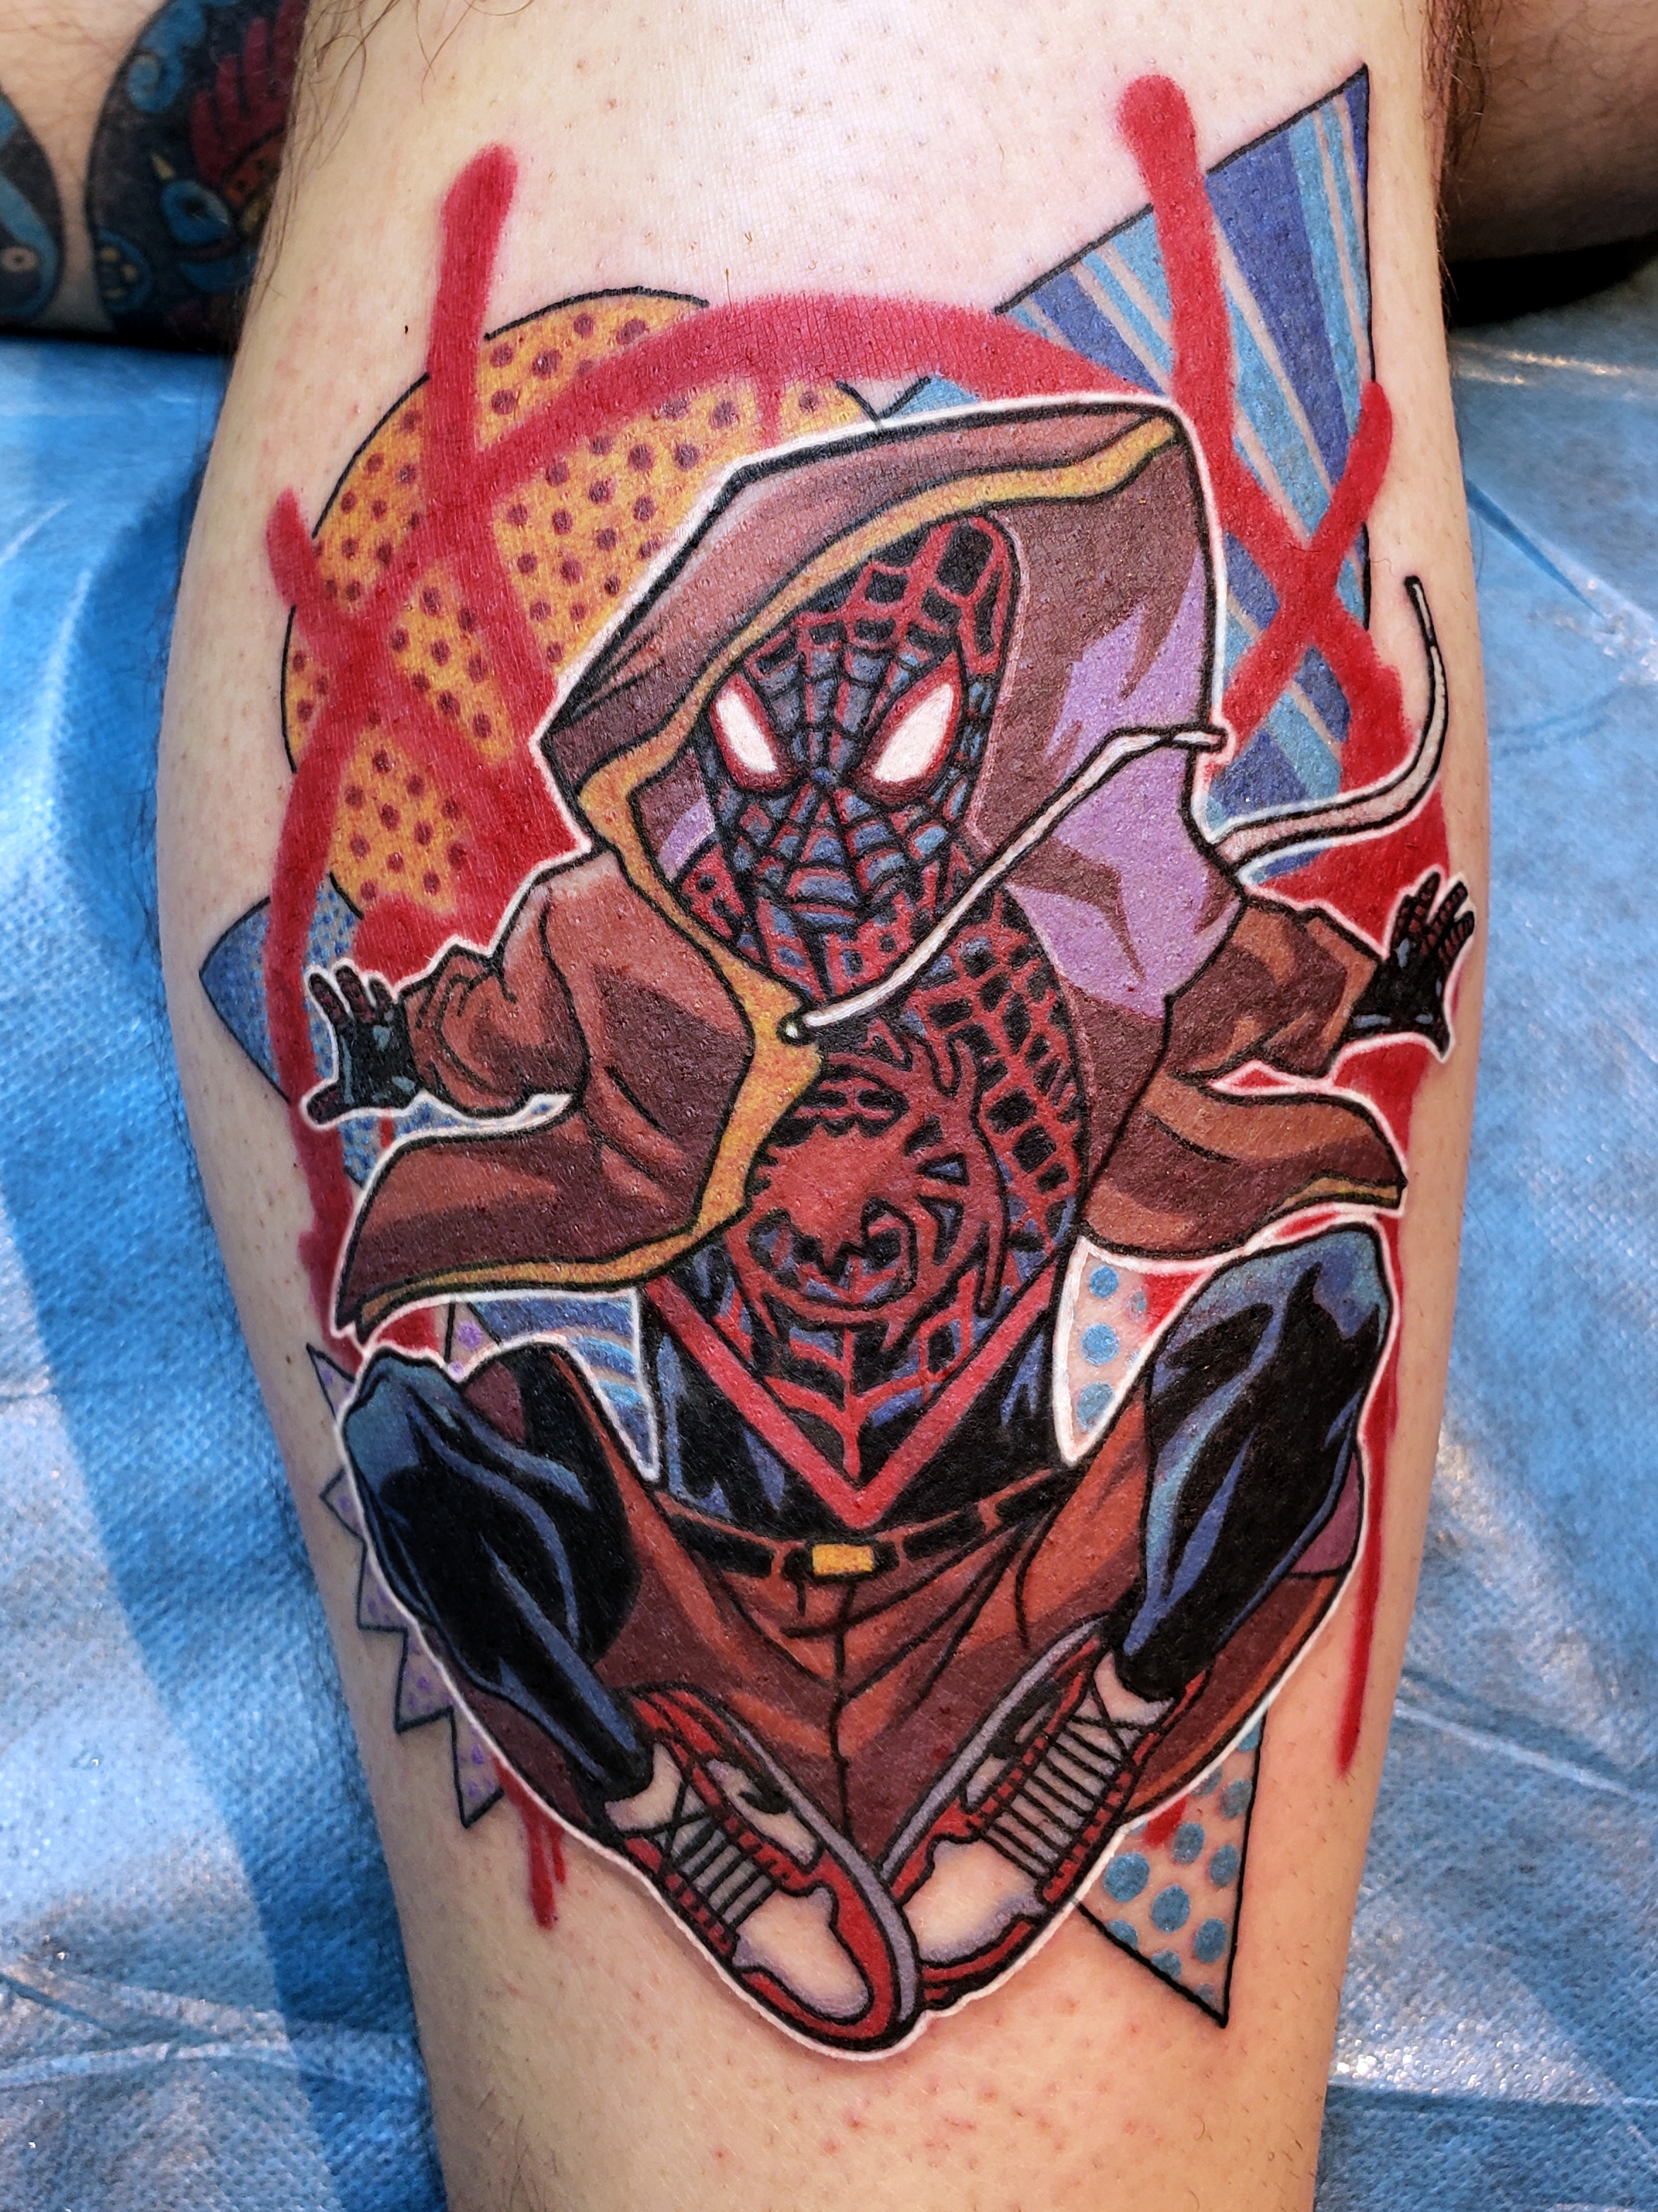 spierman tattoo